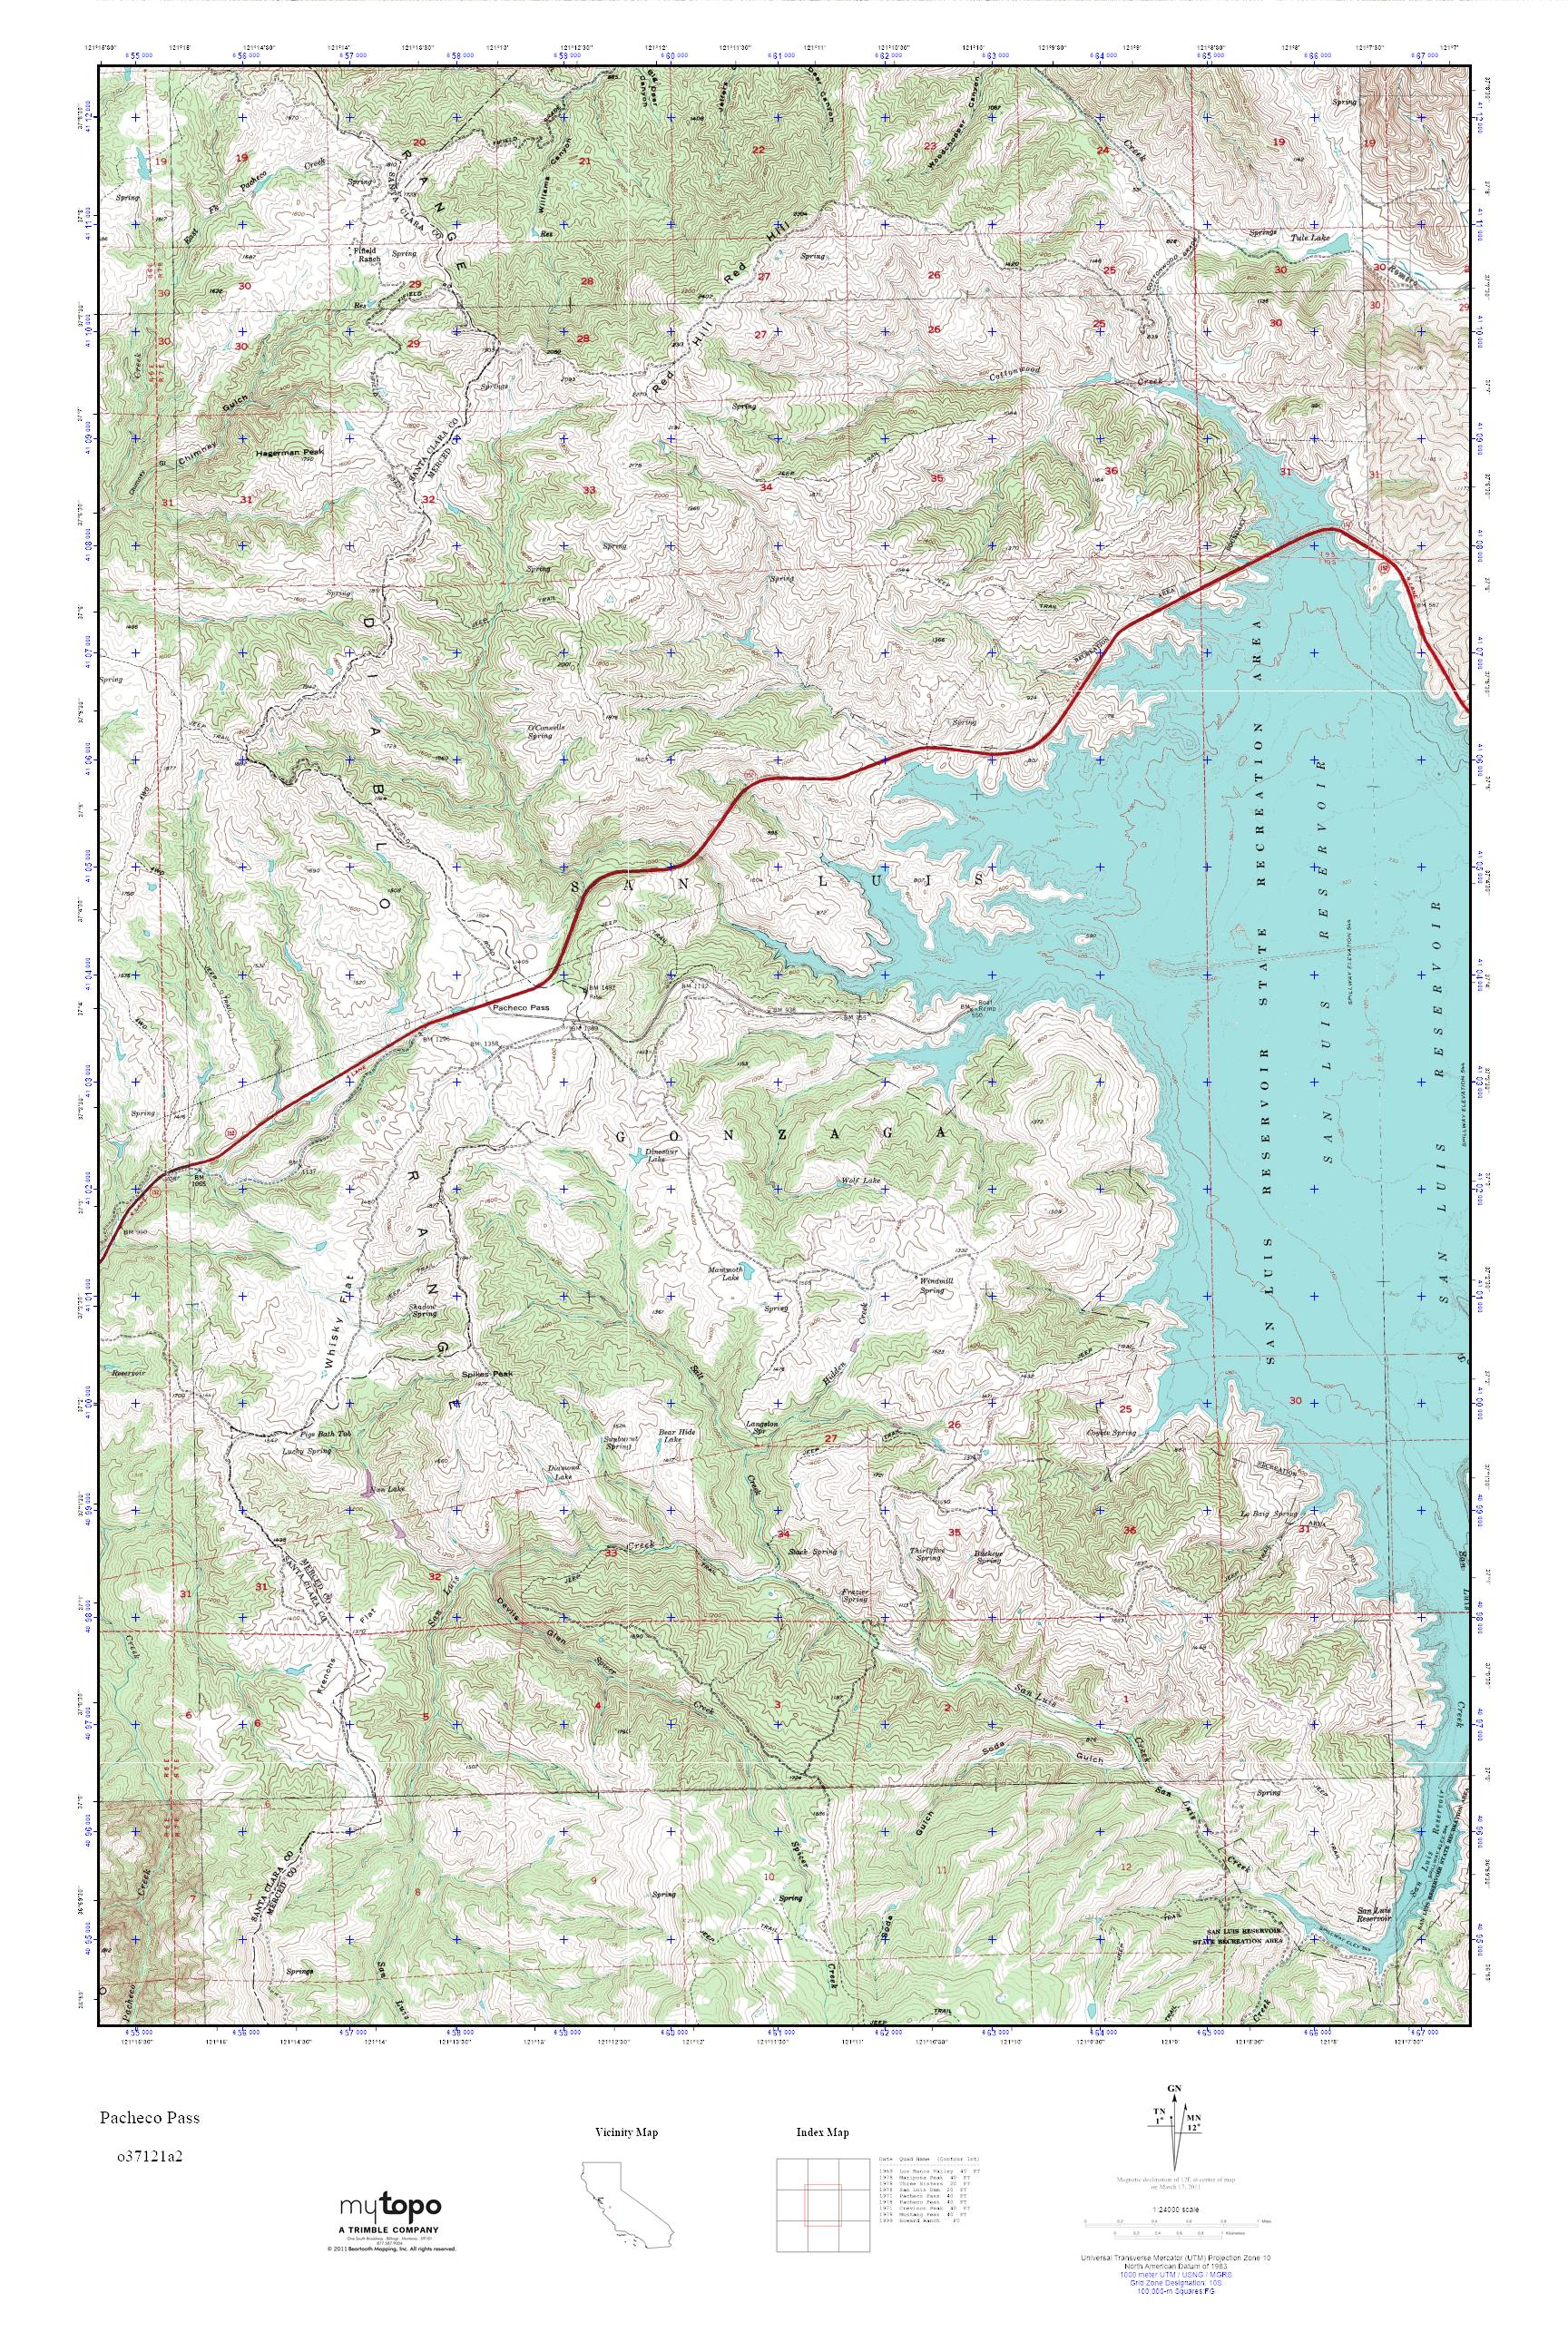 Pacheco California Map.Mytopo Pacheco Pass California Usgs Quad Topo Map